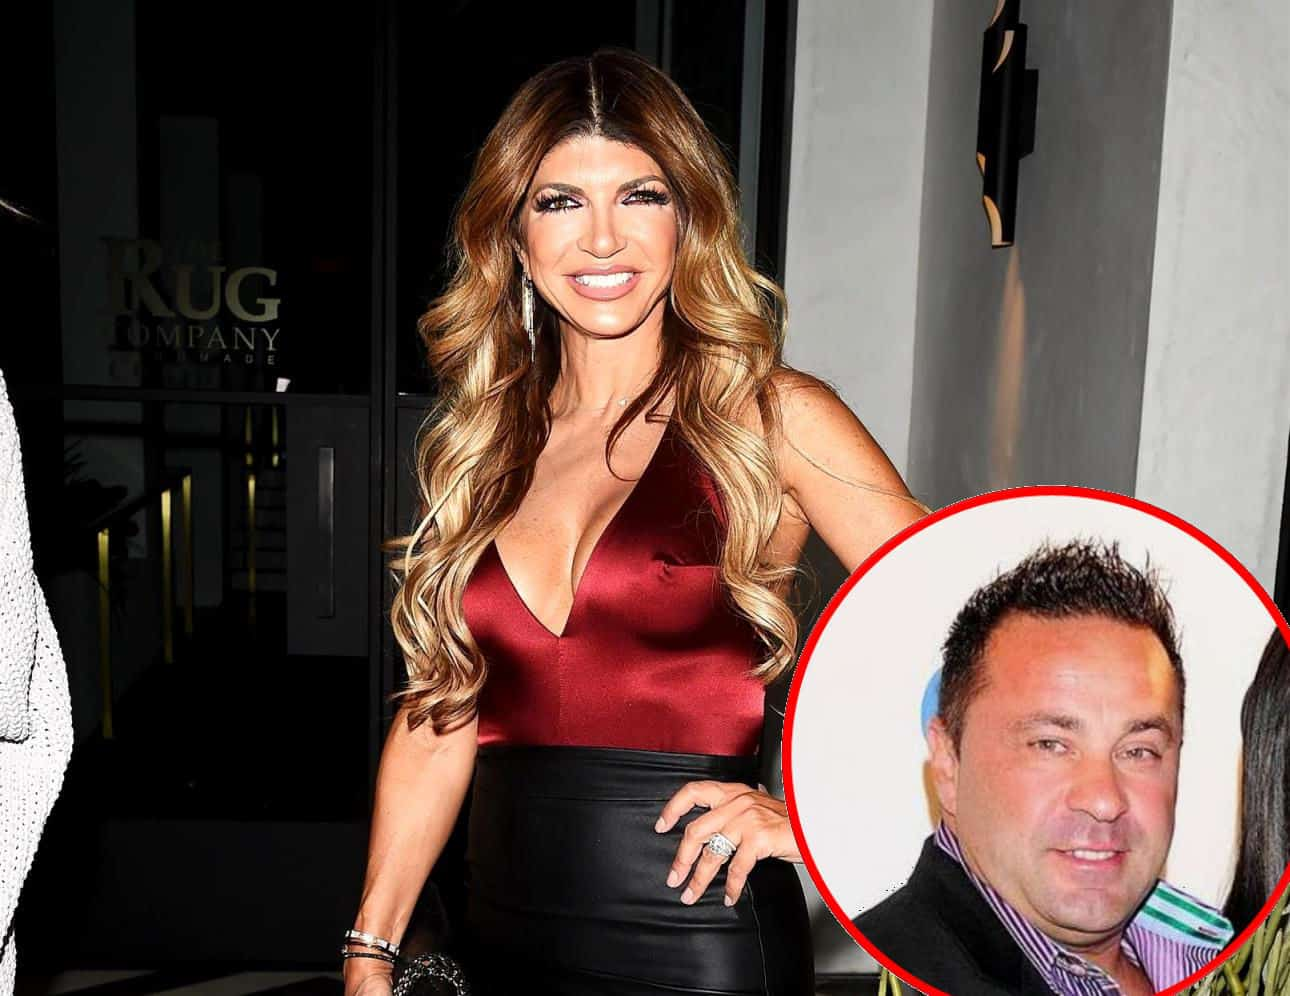 REPORT: RHONJ Star Teresa Giudice is Serious About Freezing Her Eggs at 47, Plus Why She Didn't Sleep With Husband Joe Giudice in Italy